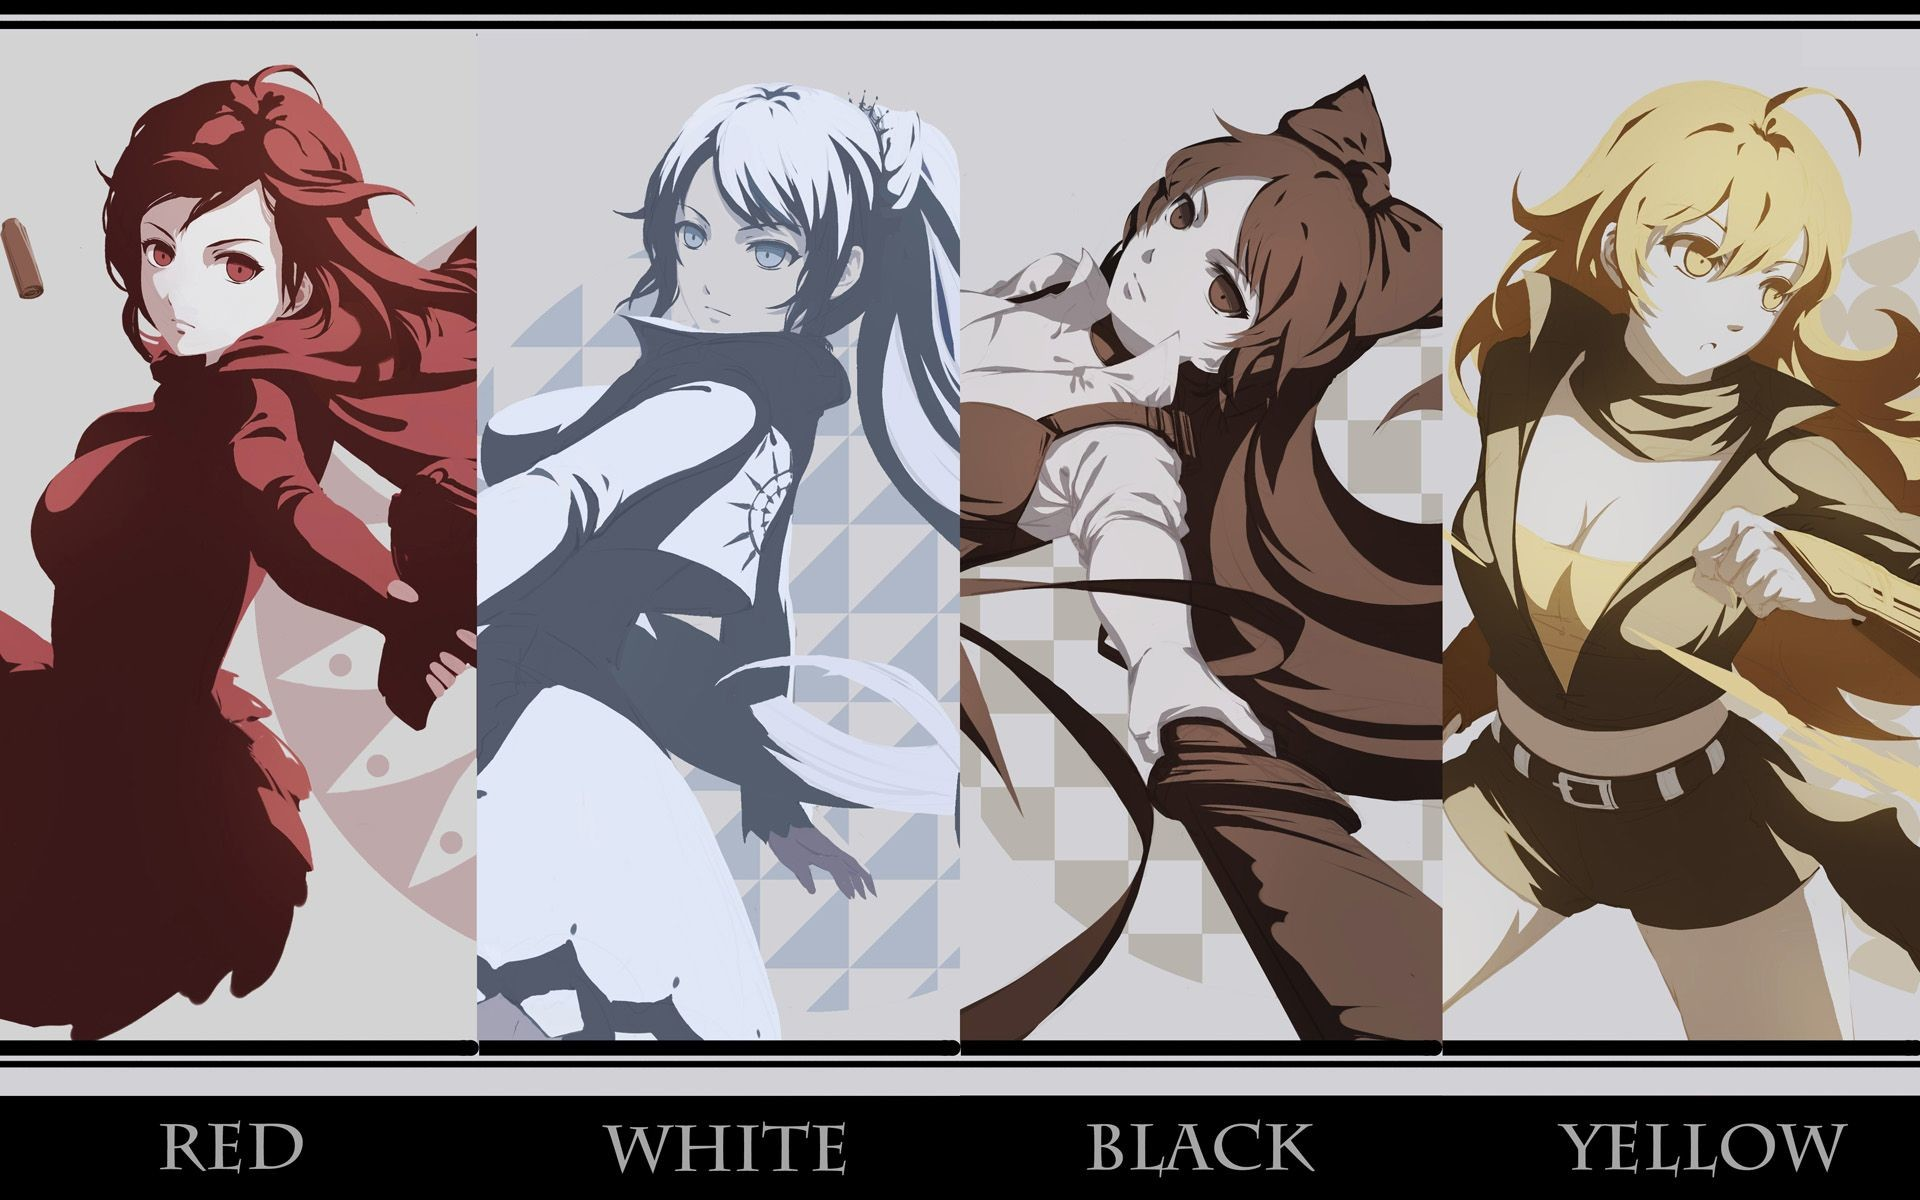 Res: 1920x1200, Anime RWBY Ruby Rose Weiss Schnee Blake Belladonna Yang Xiao Long Wallpaper